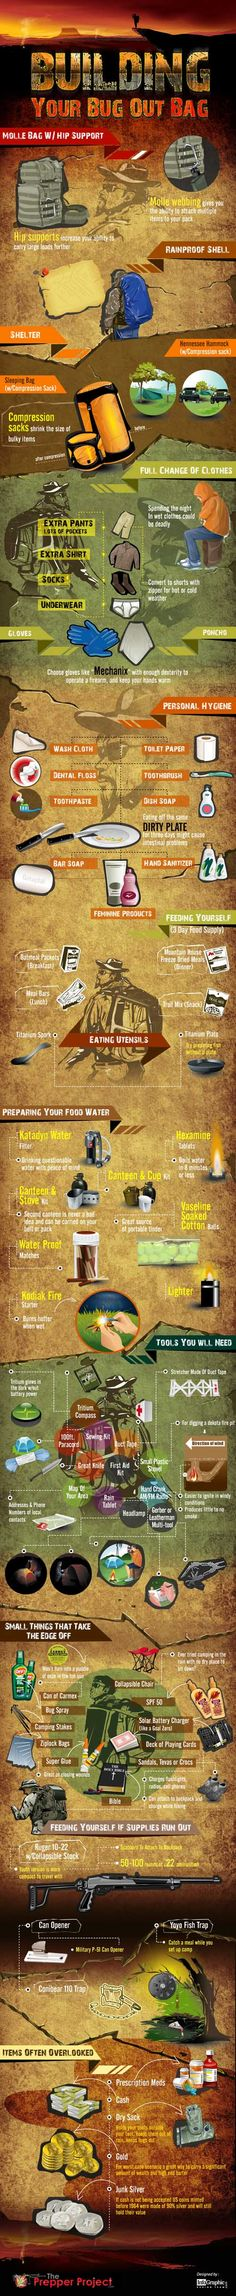 The ultimate bug out bag checklist infographic.